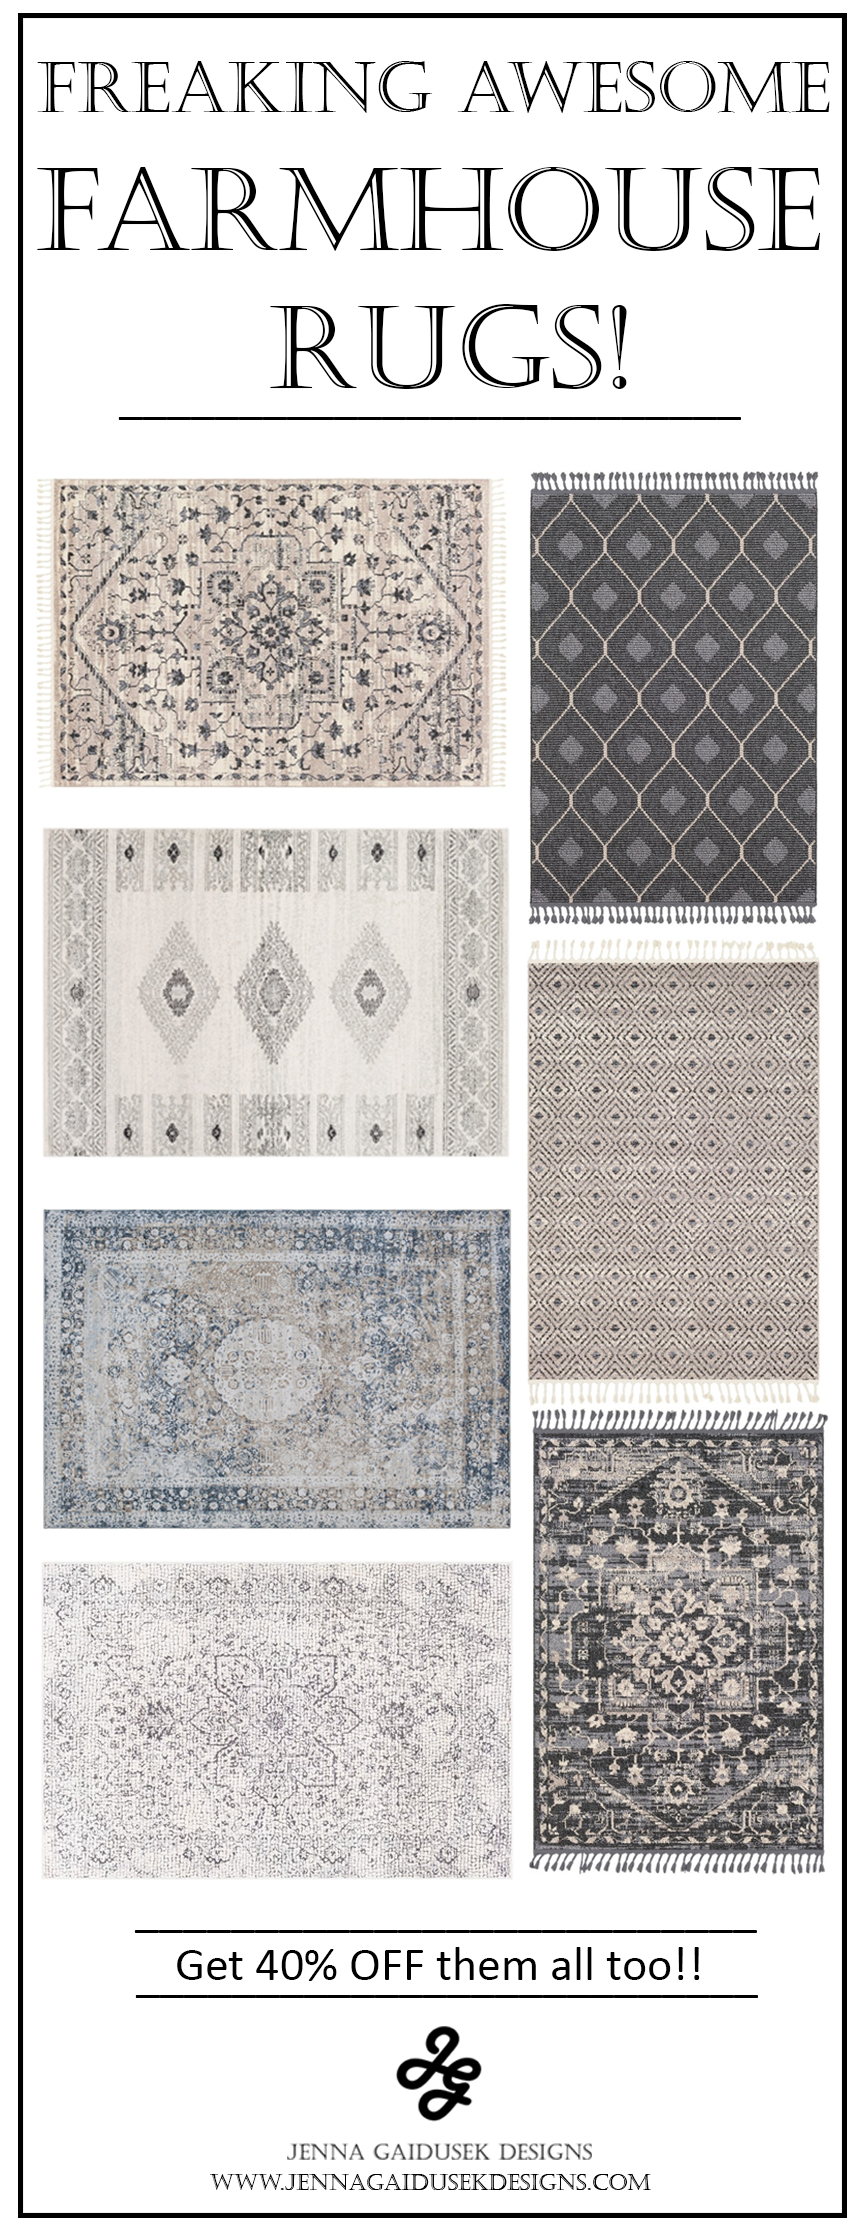 Freaking awesome farmhouse rugs! These are my favorite neutral, family friendly farmhouse rugs! I'm in love with the affordable rug prices from Boutique rugs and I have ordered a few modern farmhouse rugs already! Check out my designer picks and see what works best for your farmhouse living room, dining room rugs, bedroom rugs, runner rugs. The perfect neutral rug colors, blue rugs, gray rugs and pattern rugs.